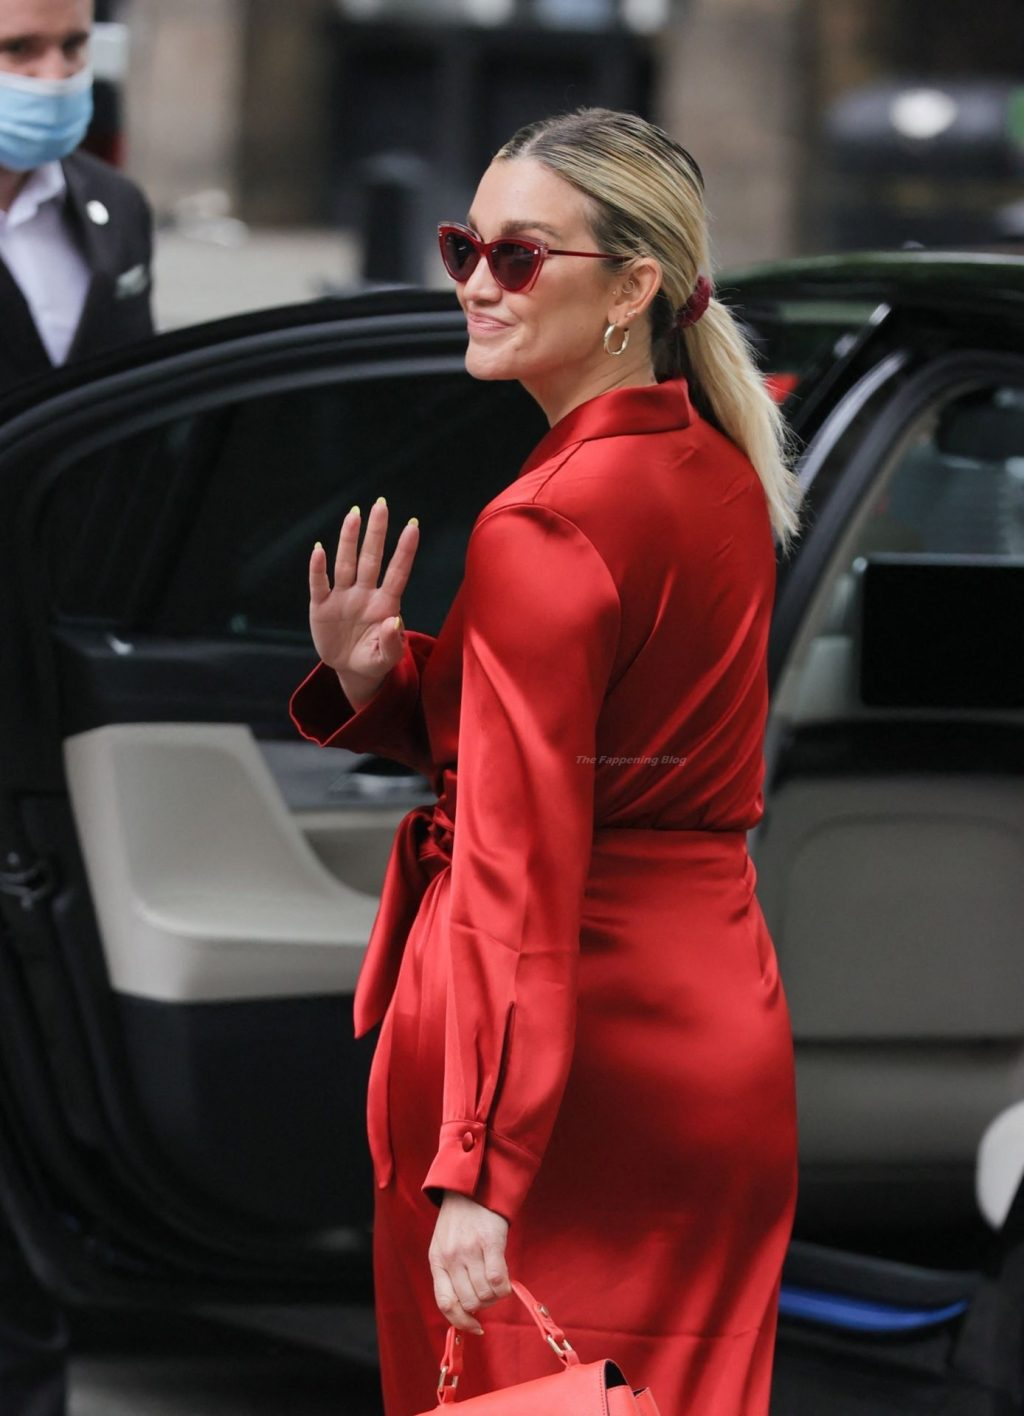 Ashley Roberts is Seen Departing After Her Heart FM Show (30 Photos)